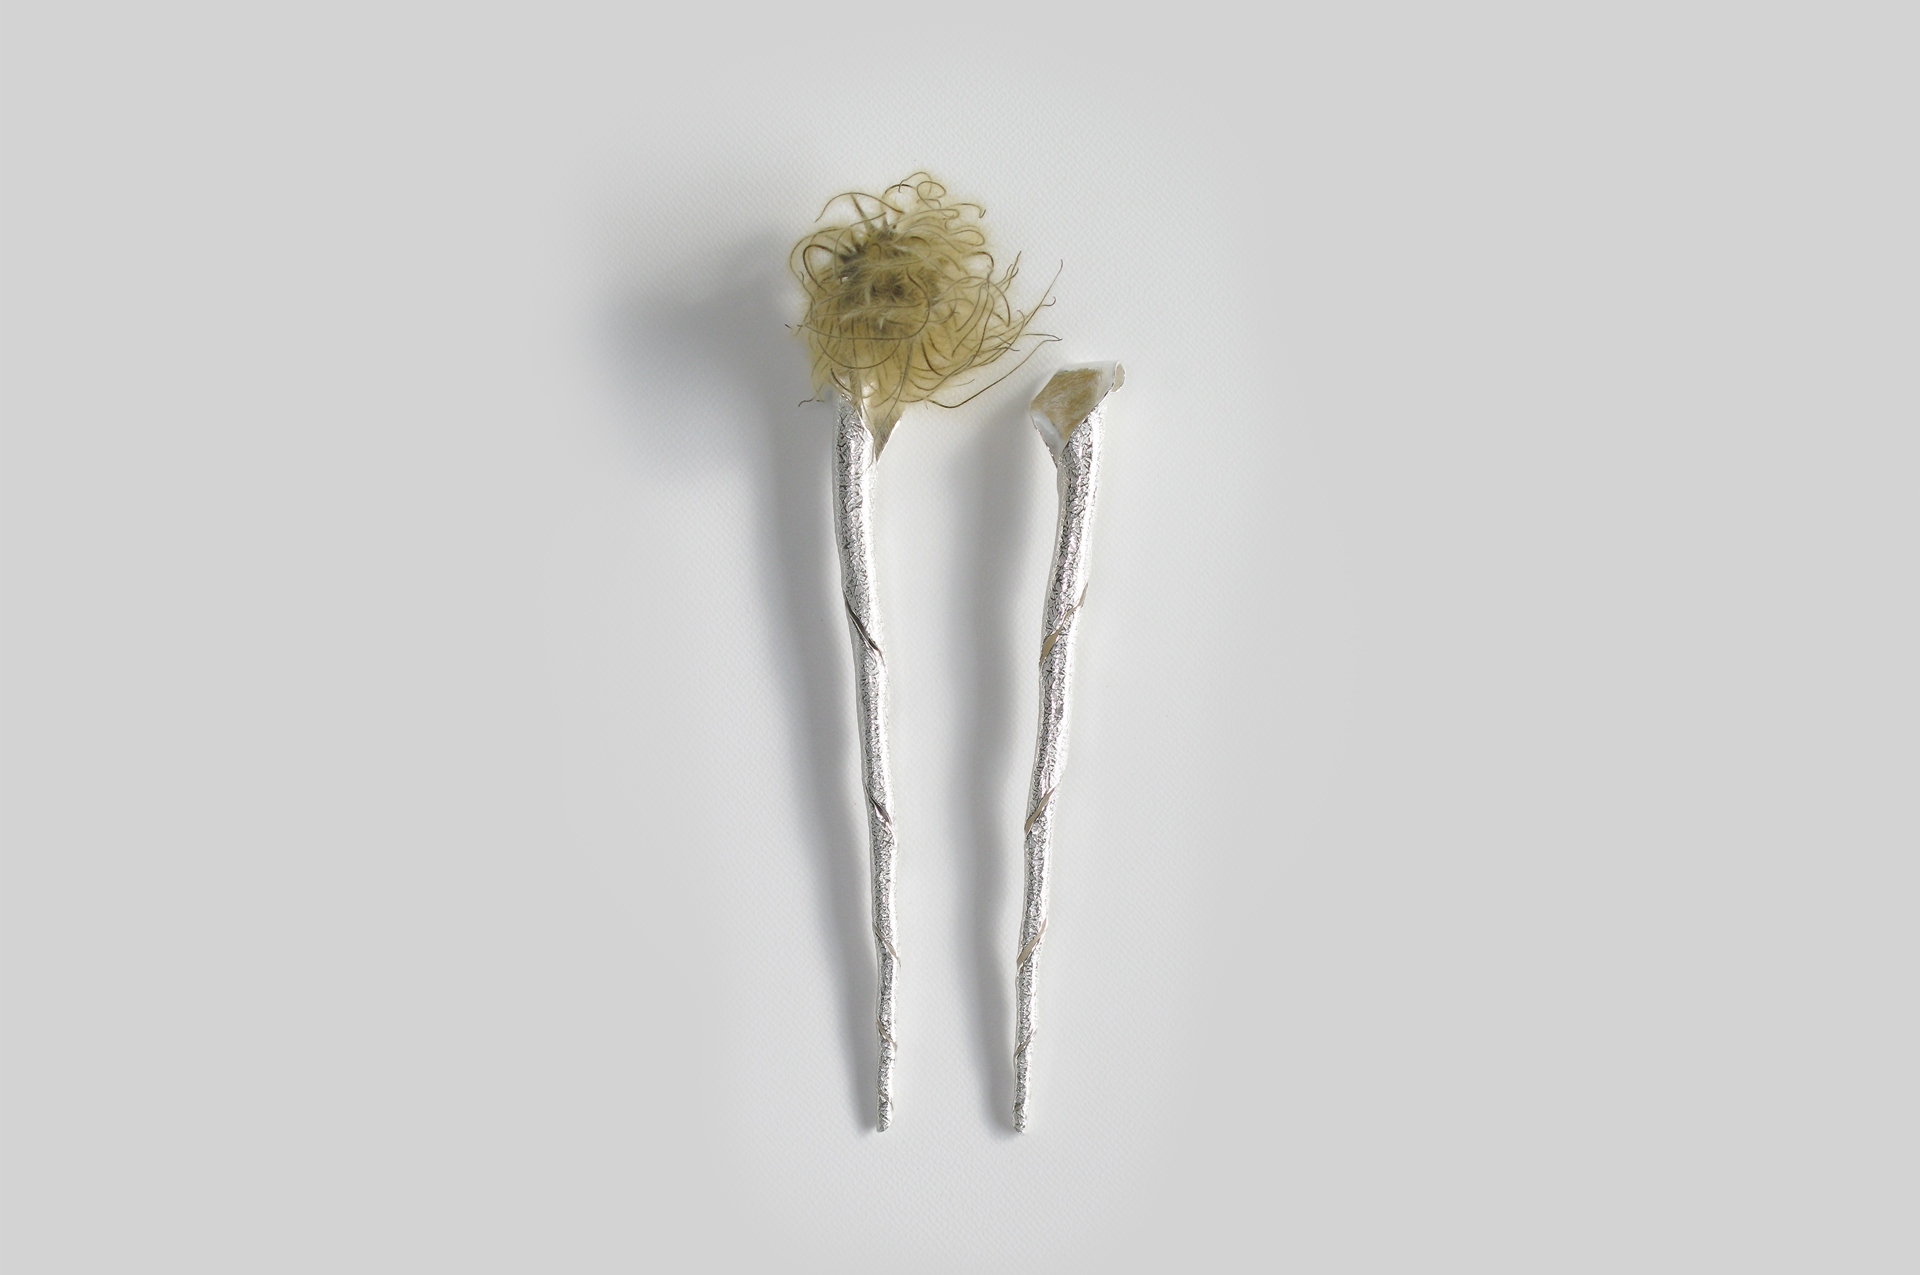 klema_carrying-seeds_hair-stick_2007